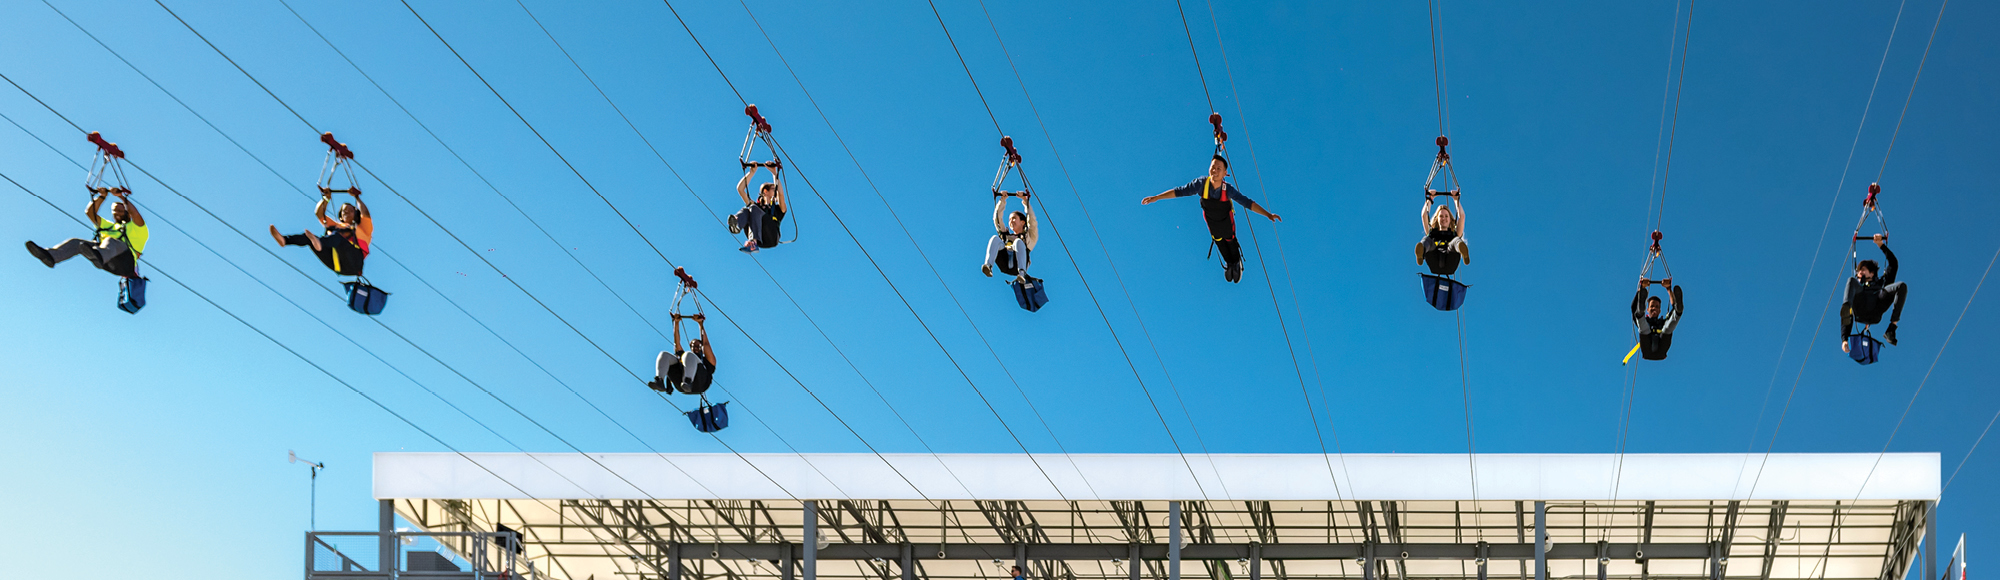 Fly LINQ attraction